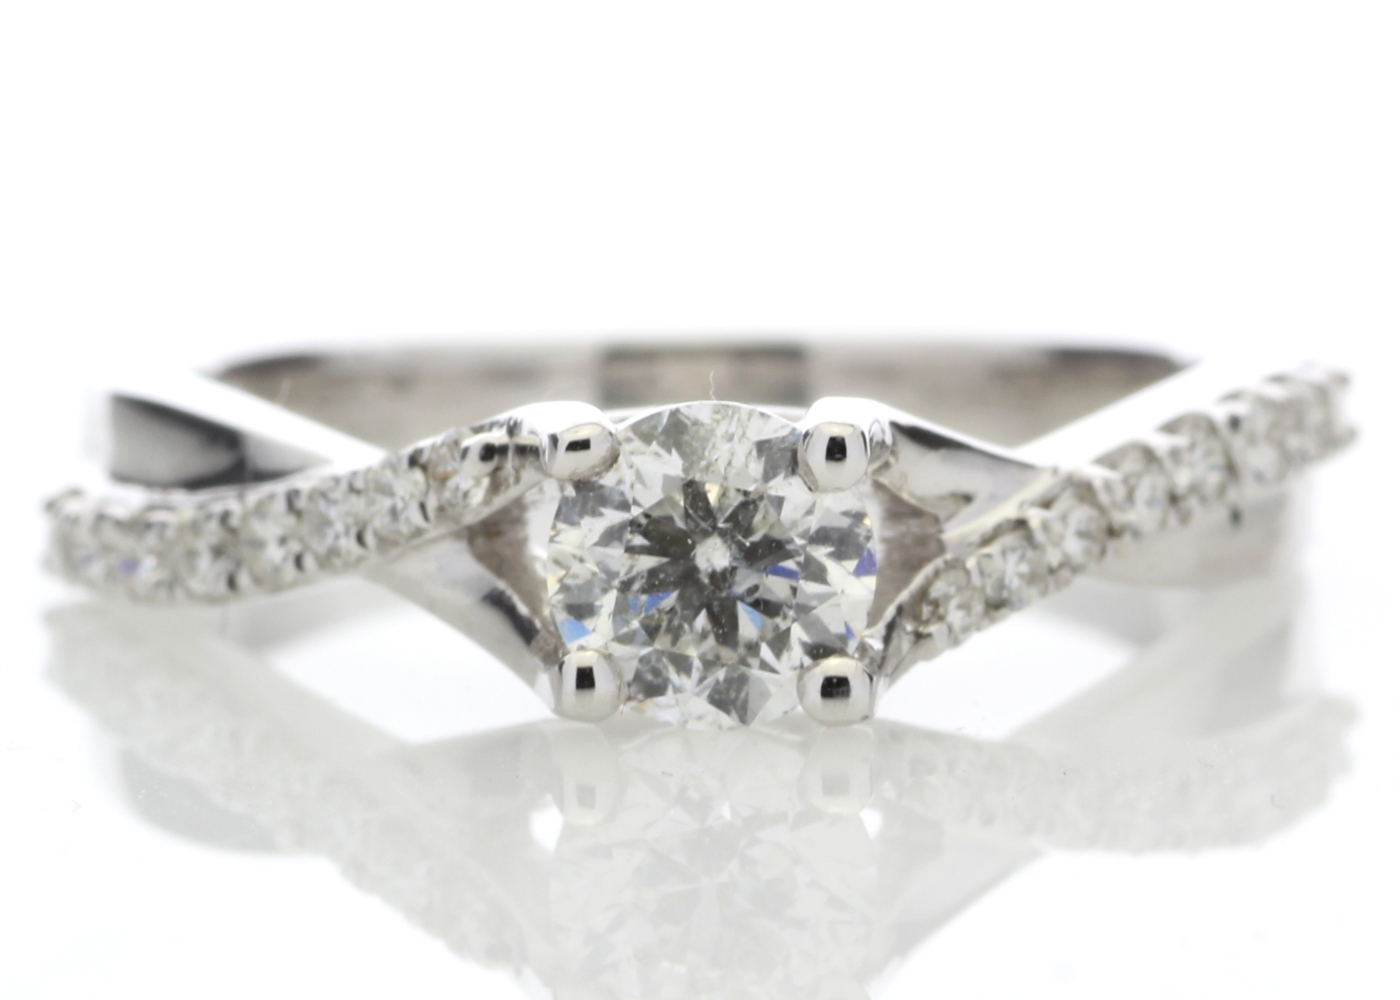 Lot 15 - 18ct White Gold diamond Ring With Stone Set Shoulders 0.72 Carats